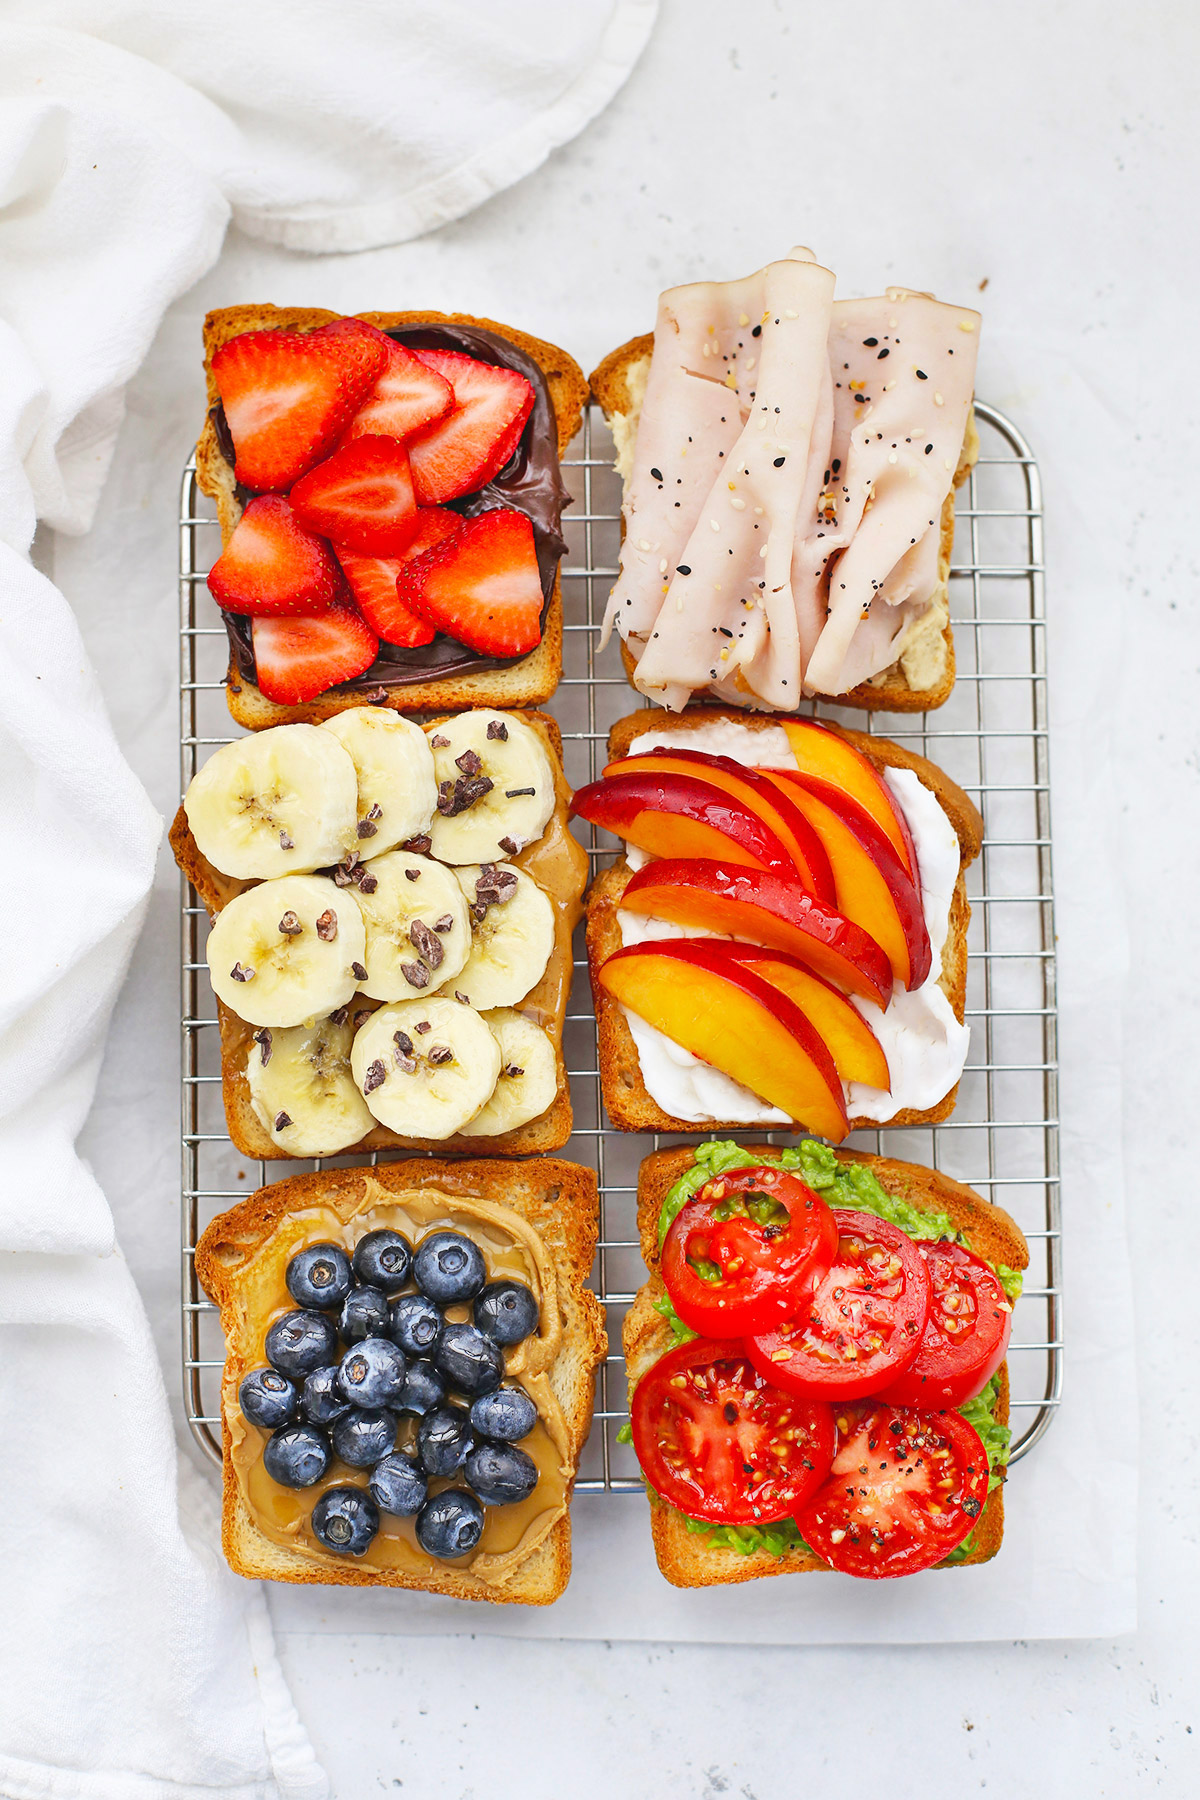 Overhead view of six Slices of Gluten-Free toast with different toppings on a wire cooling rack